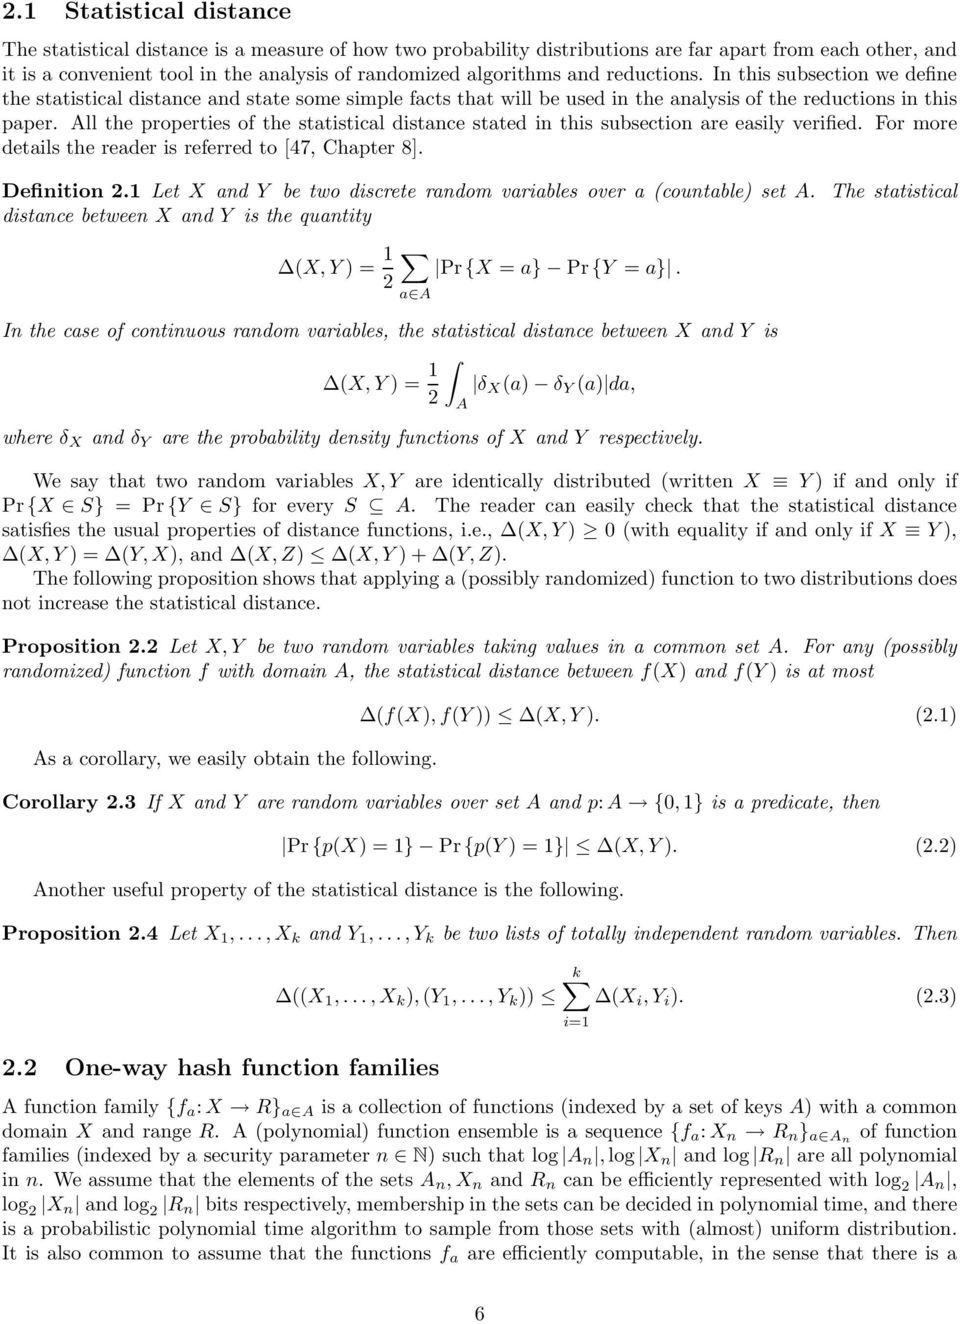 All the properties of the statistical distance stated in this subsection are easily verified. For more details the reader is referred to [47, Chapter 8]. Definition 2.